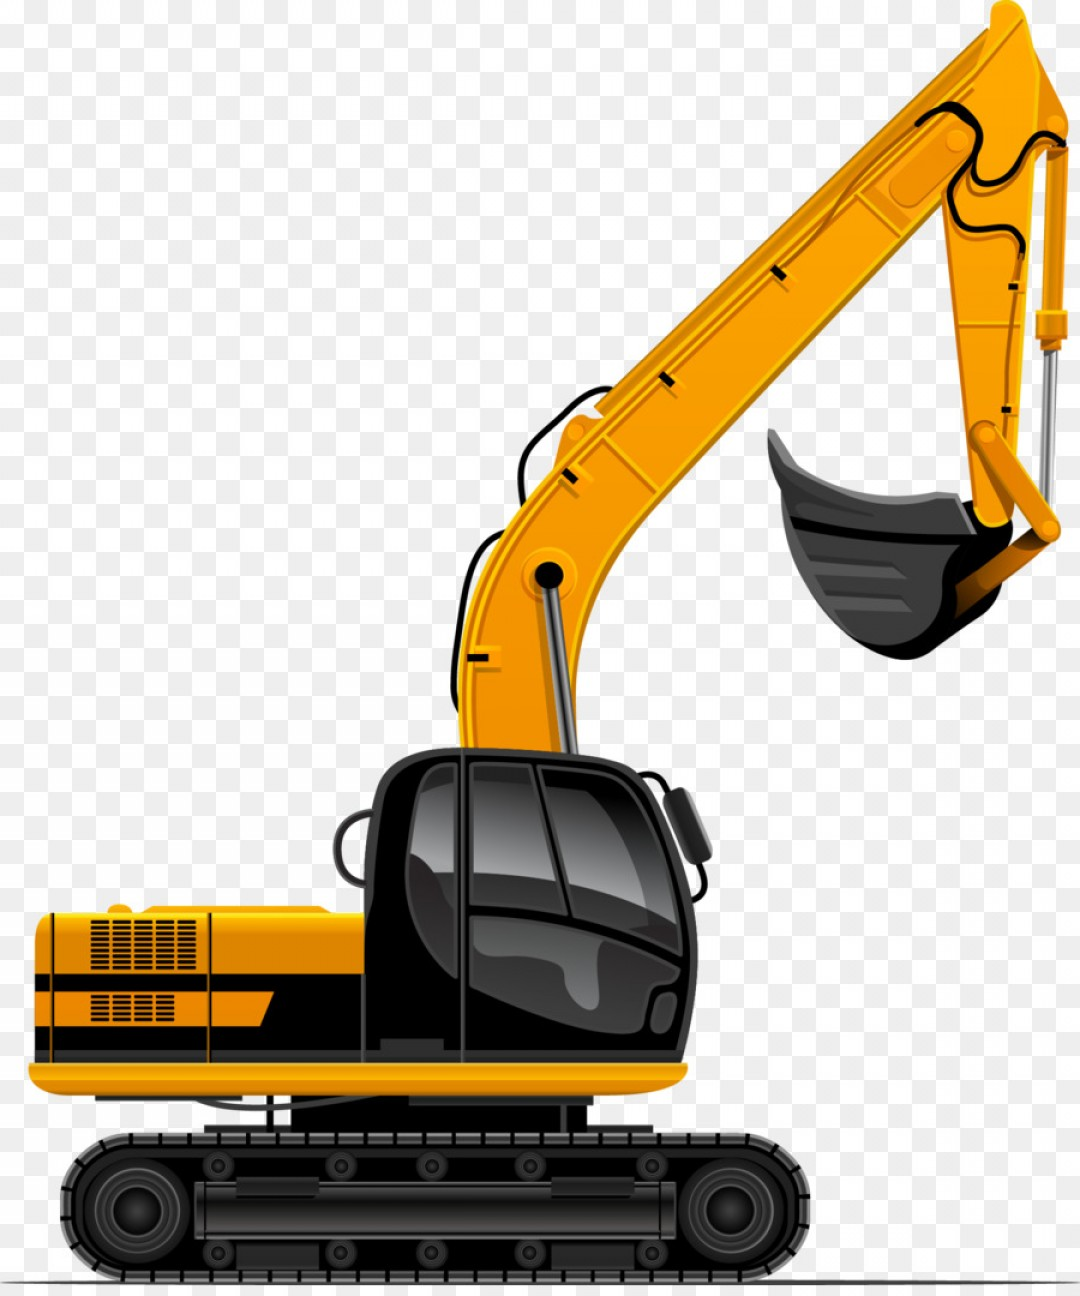 Backhoe clipart mining equipment. Vector art handandbeak